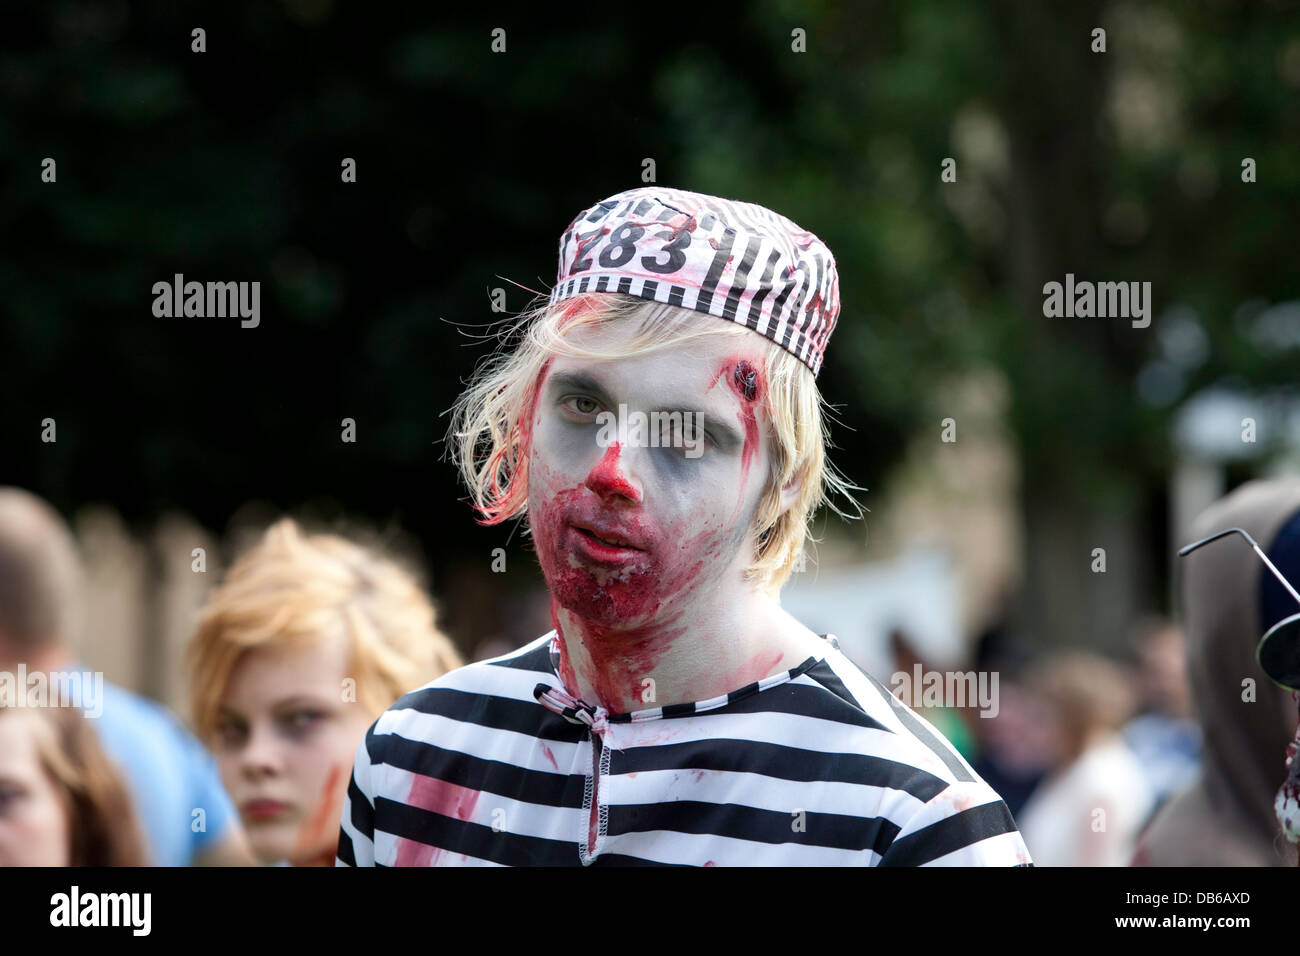 Zombies at Stockholm Zombie Walk 2012. A zombie dressed as a prisoner. - Stock Image